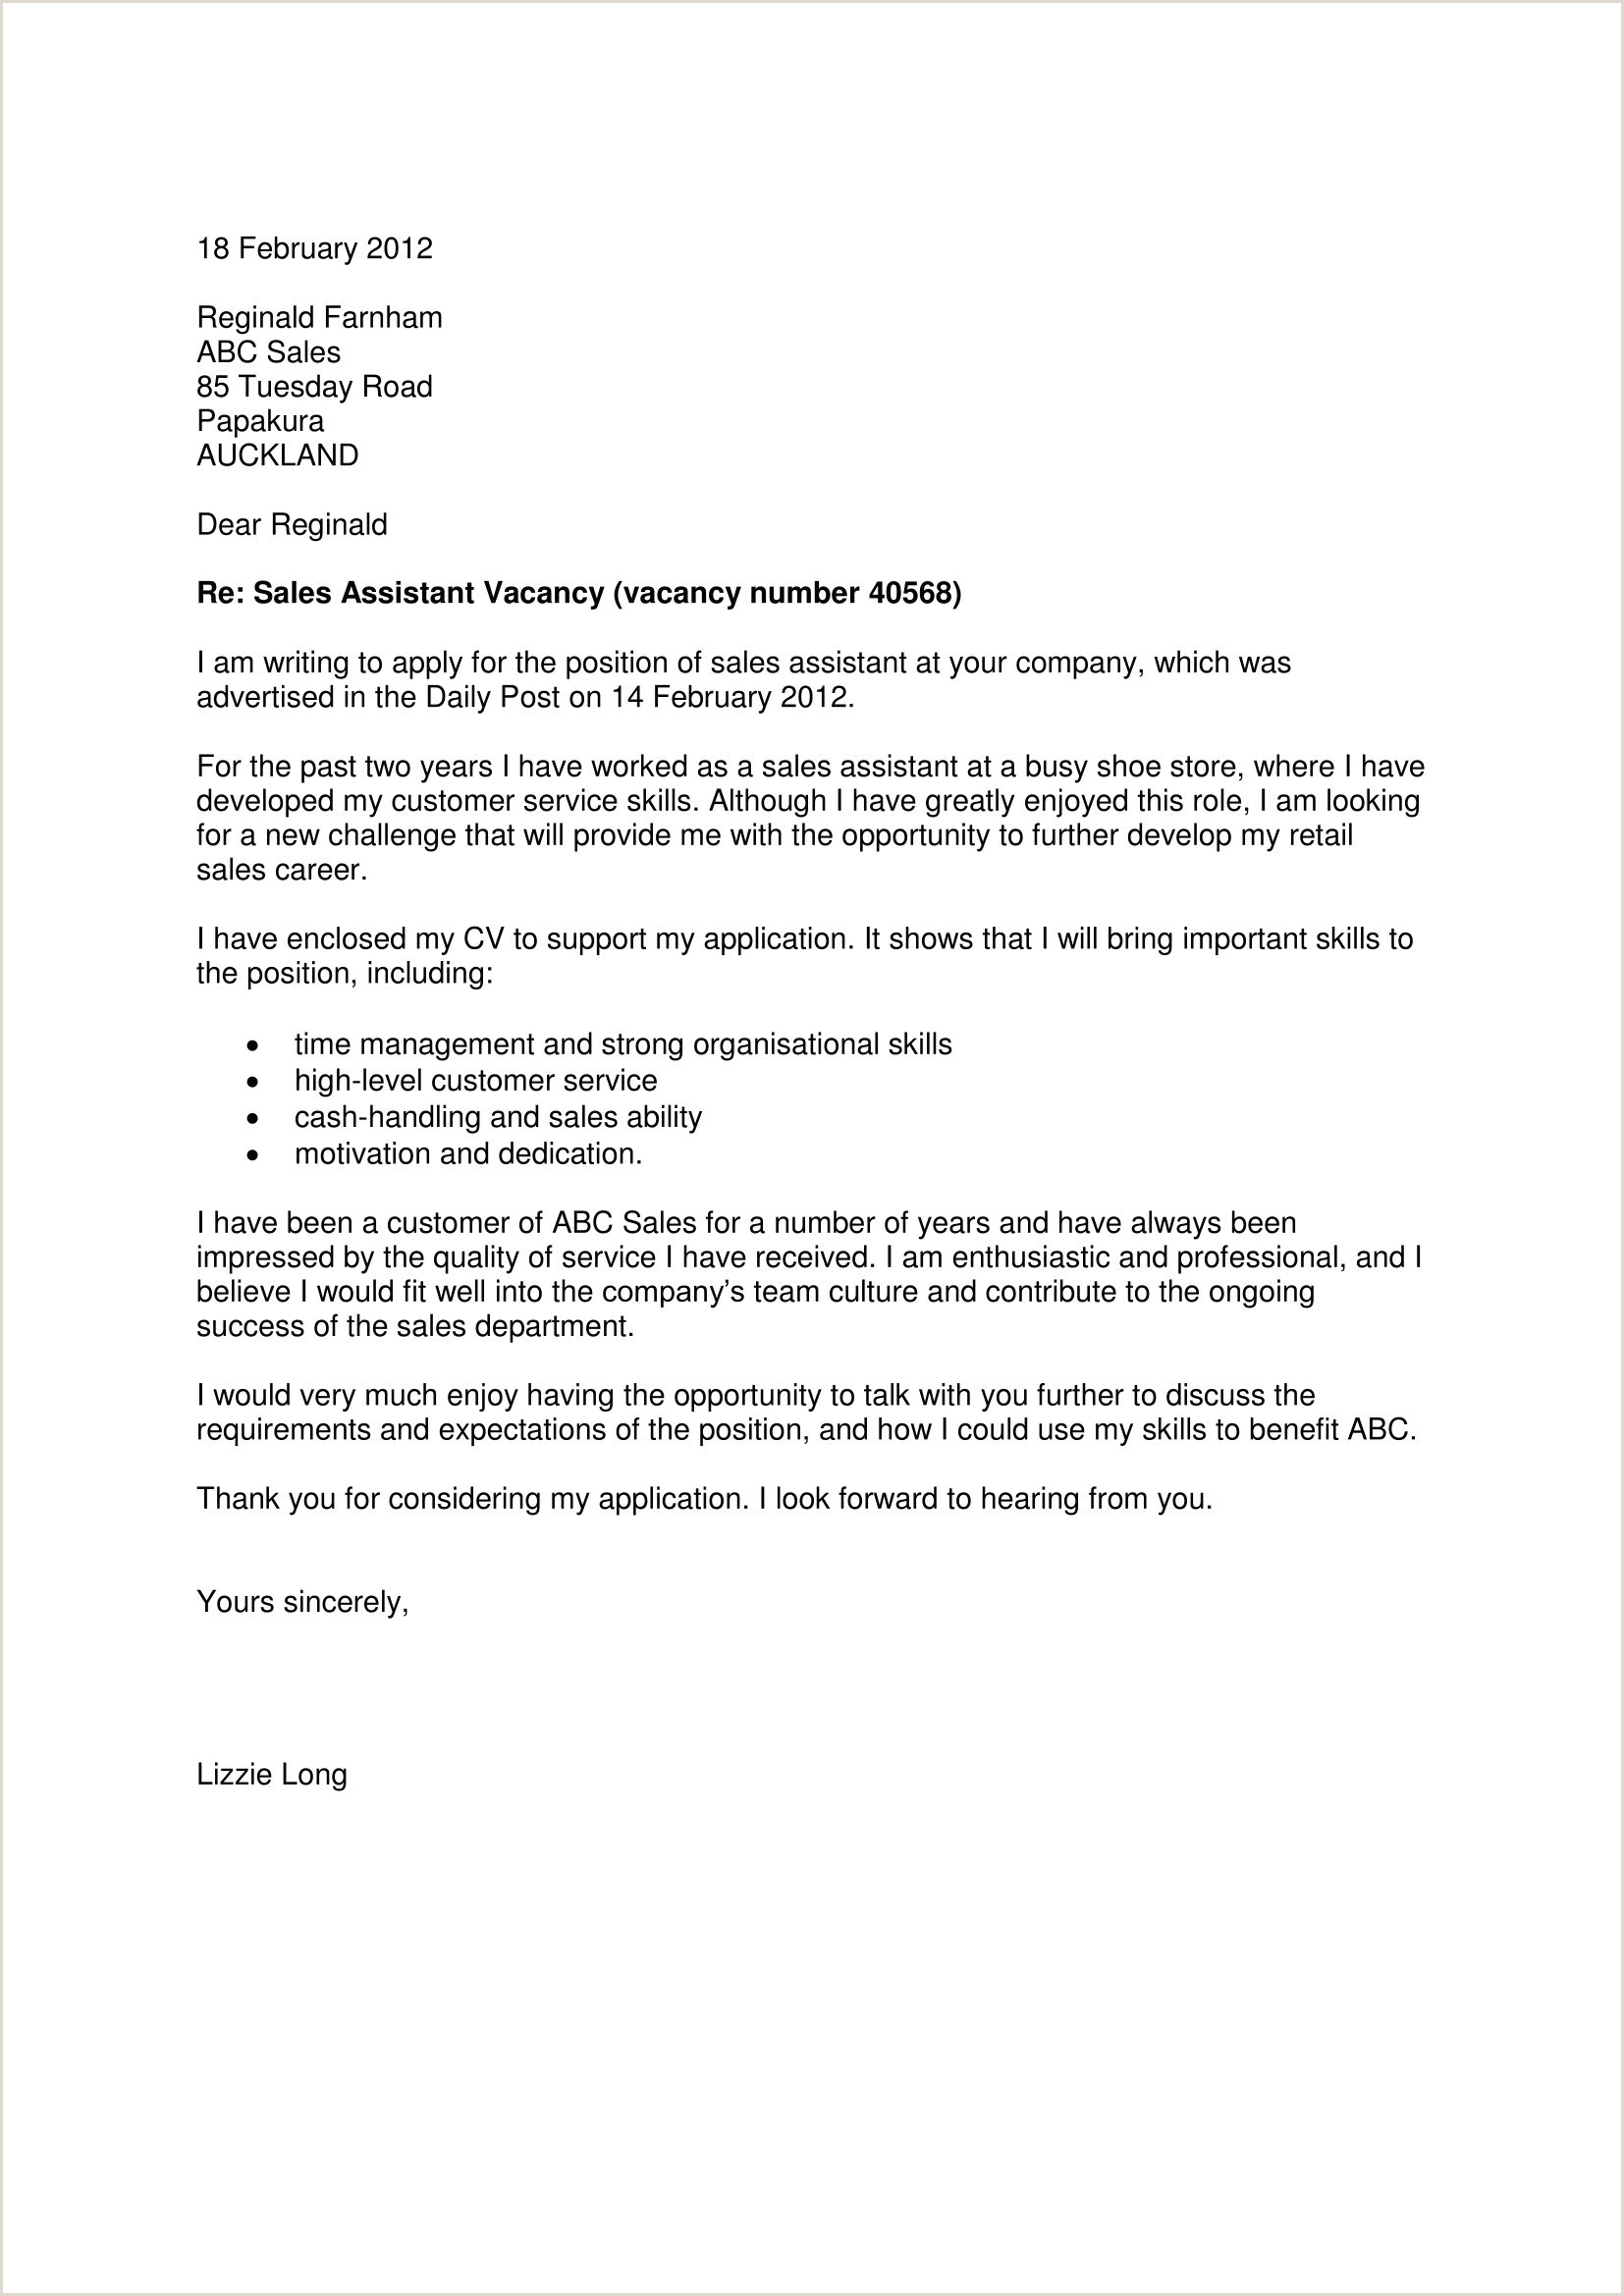 Sales Job Covering Letter Cover Letter for Sales Job Cover Letter for area Manager